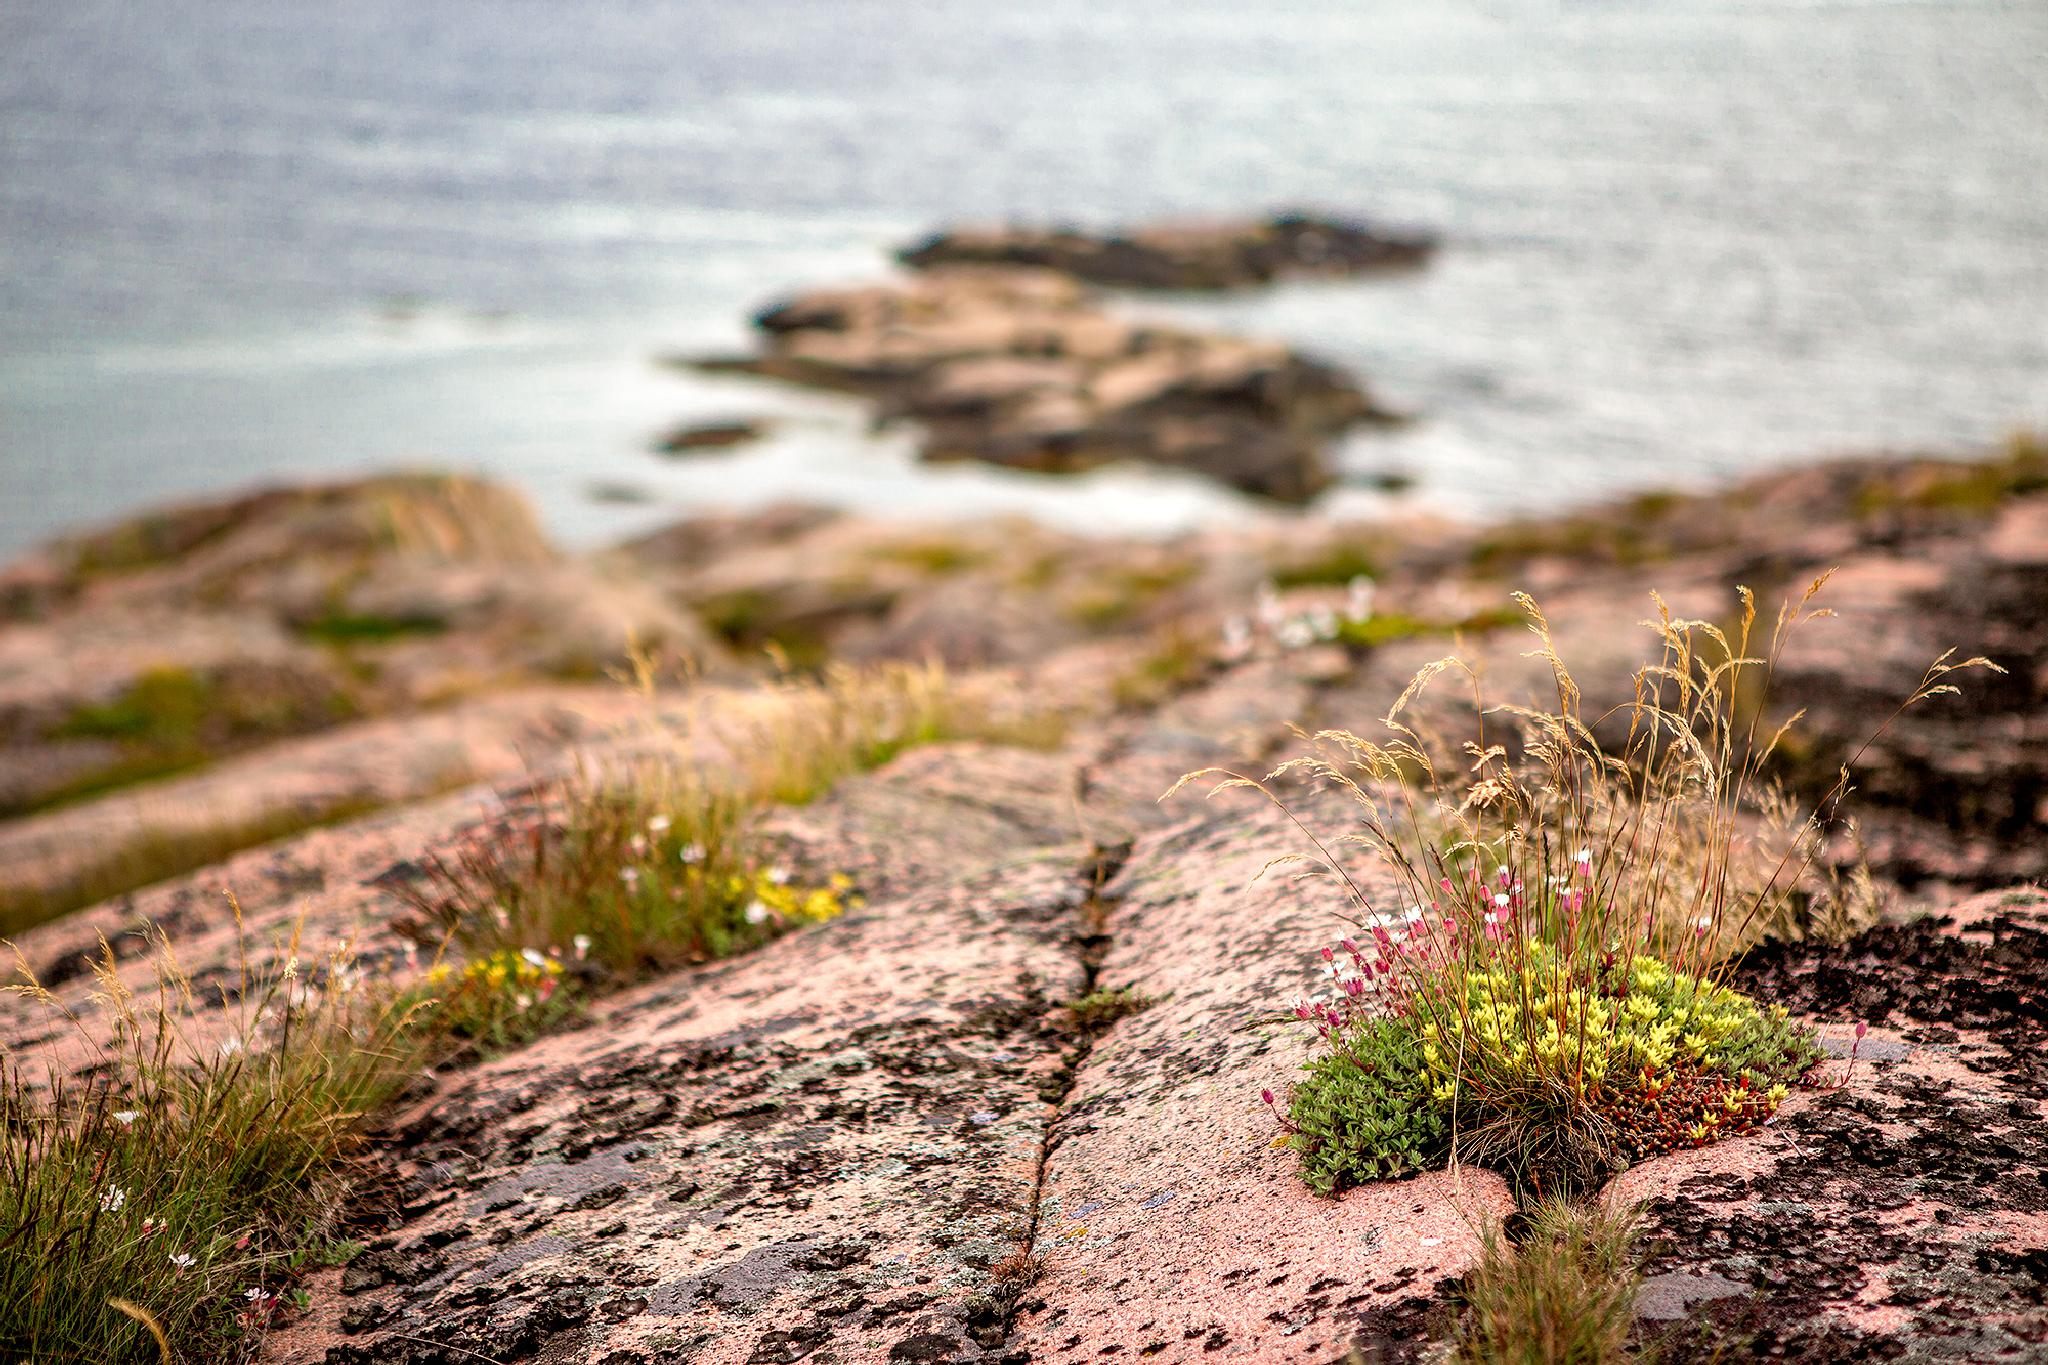 Falling into the sea by Pär Ohlson